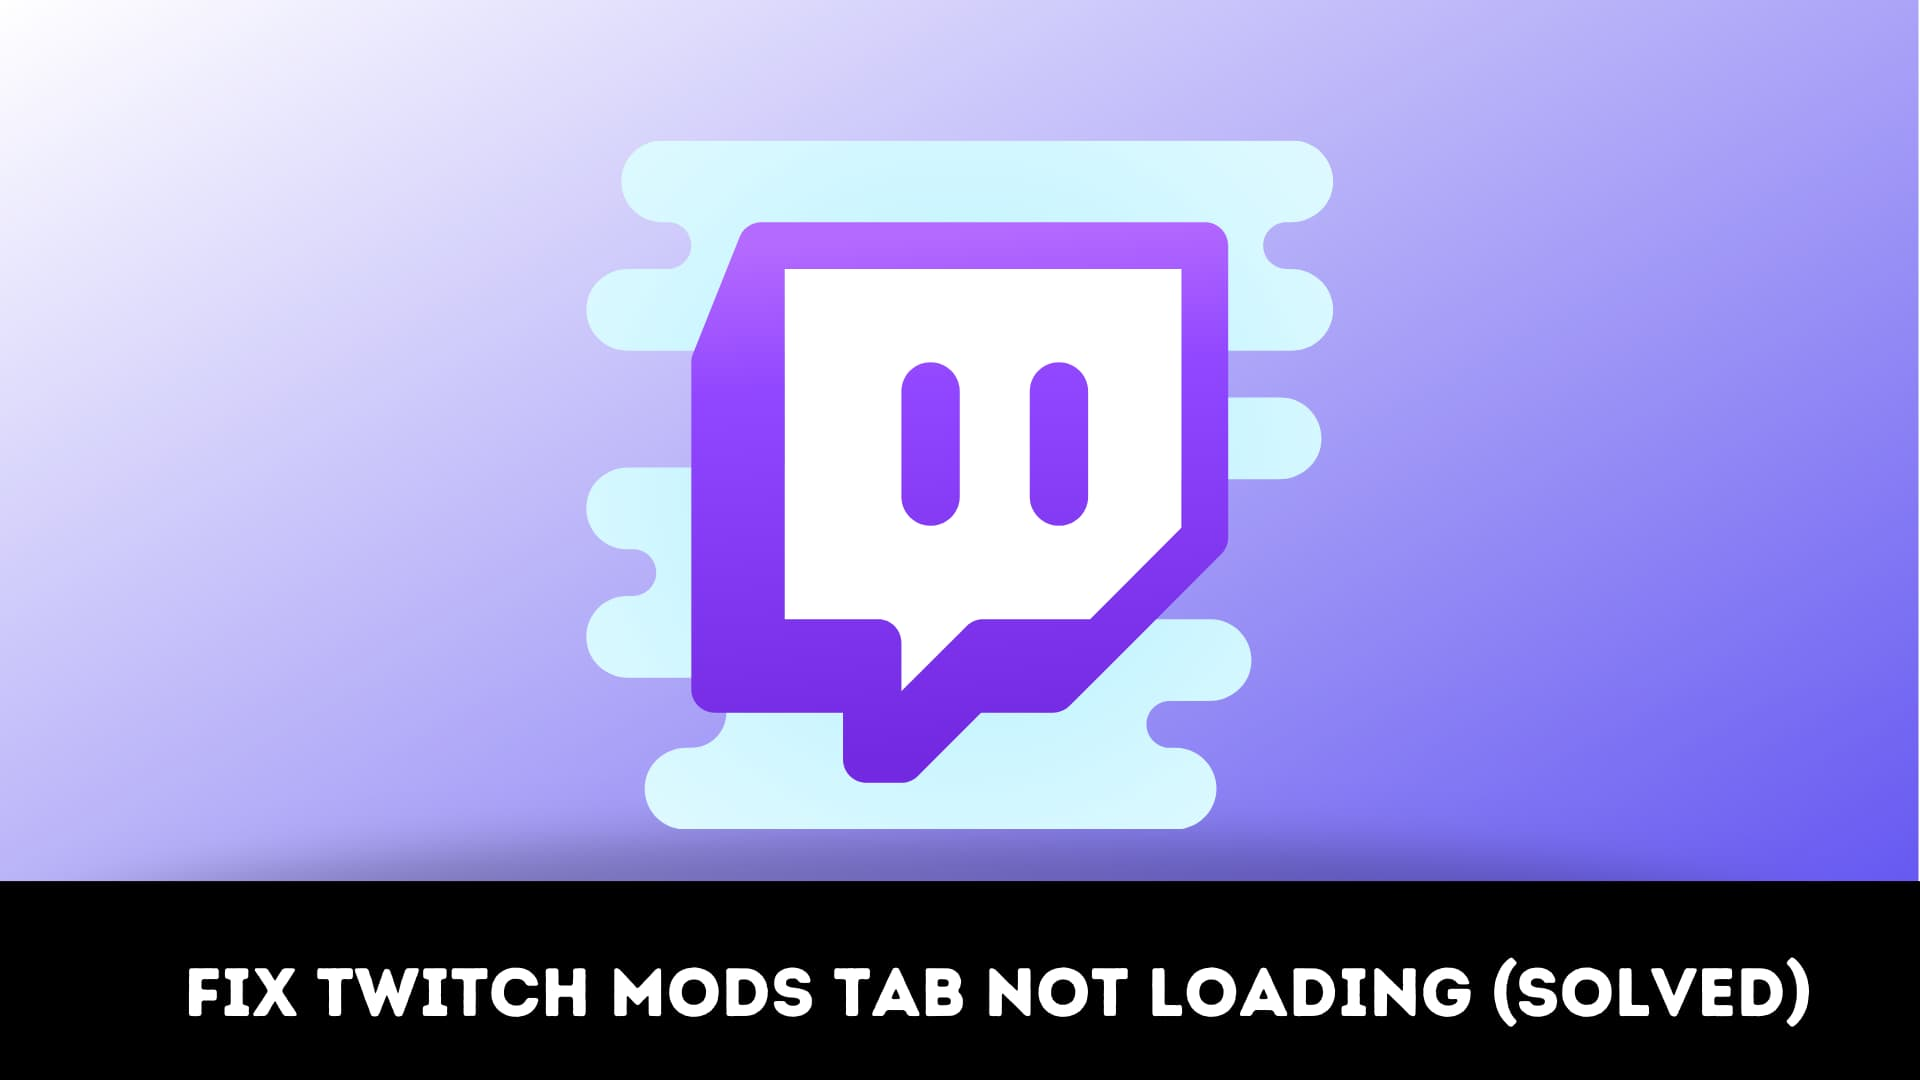 How to Fix Twitch Mods Tab Not Loading 2021